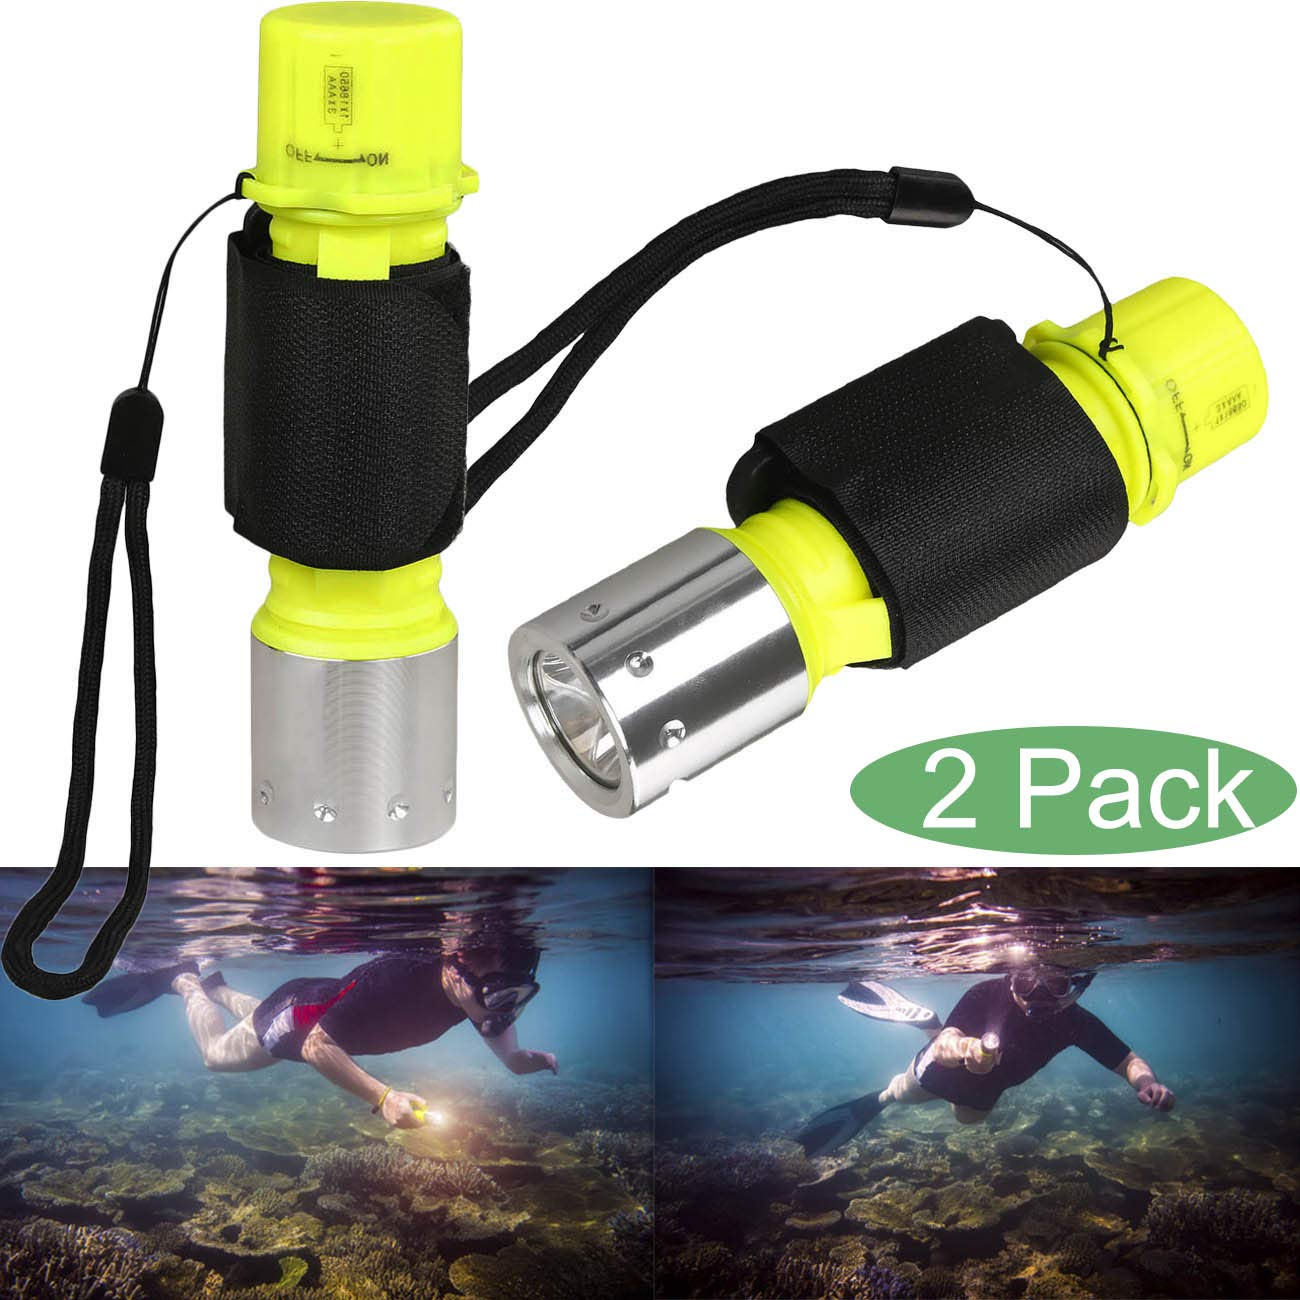 Garberiel 2 Pack Diving Flashlight, Super Bright Diving Light 3 Modes Underwater Torch for Scuba Diving, Night Snorkeling (Battery Not Include) by Garberiel